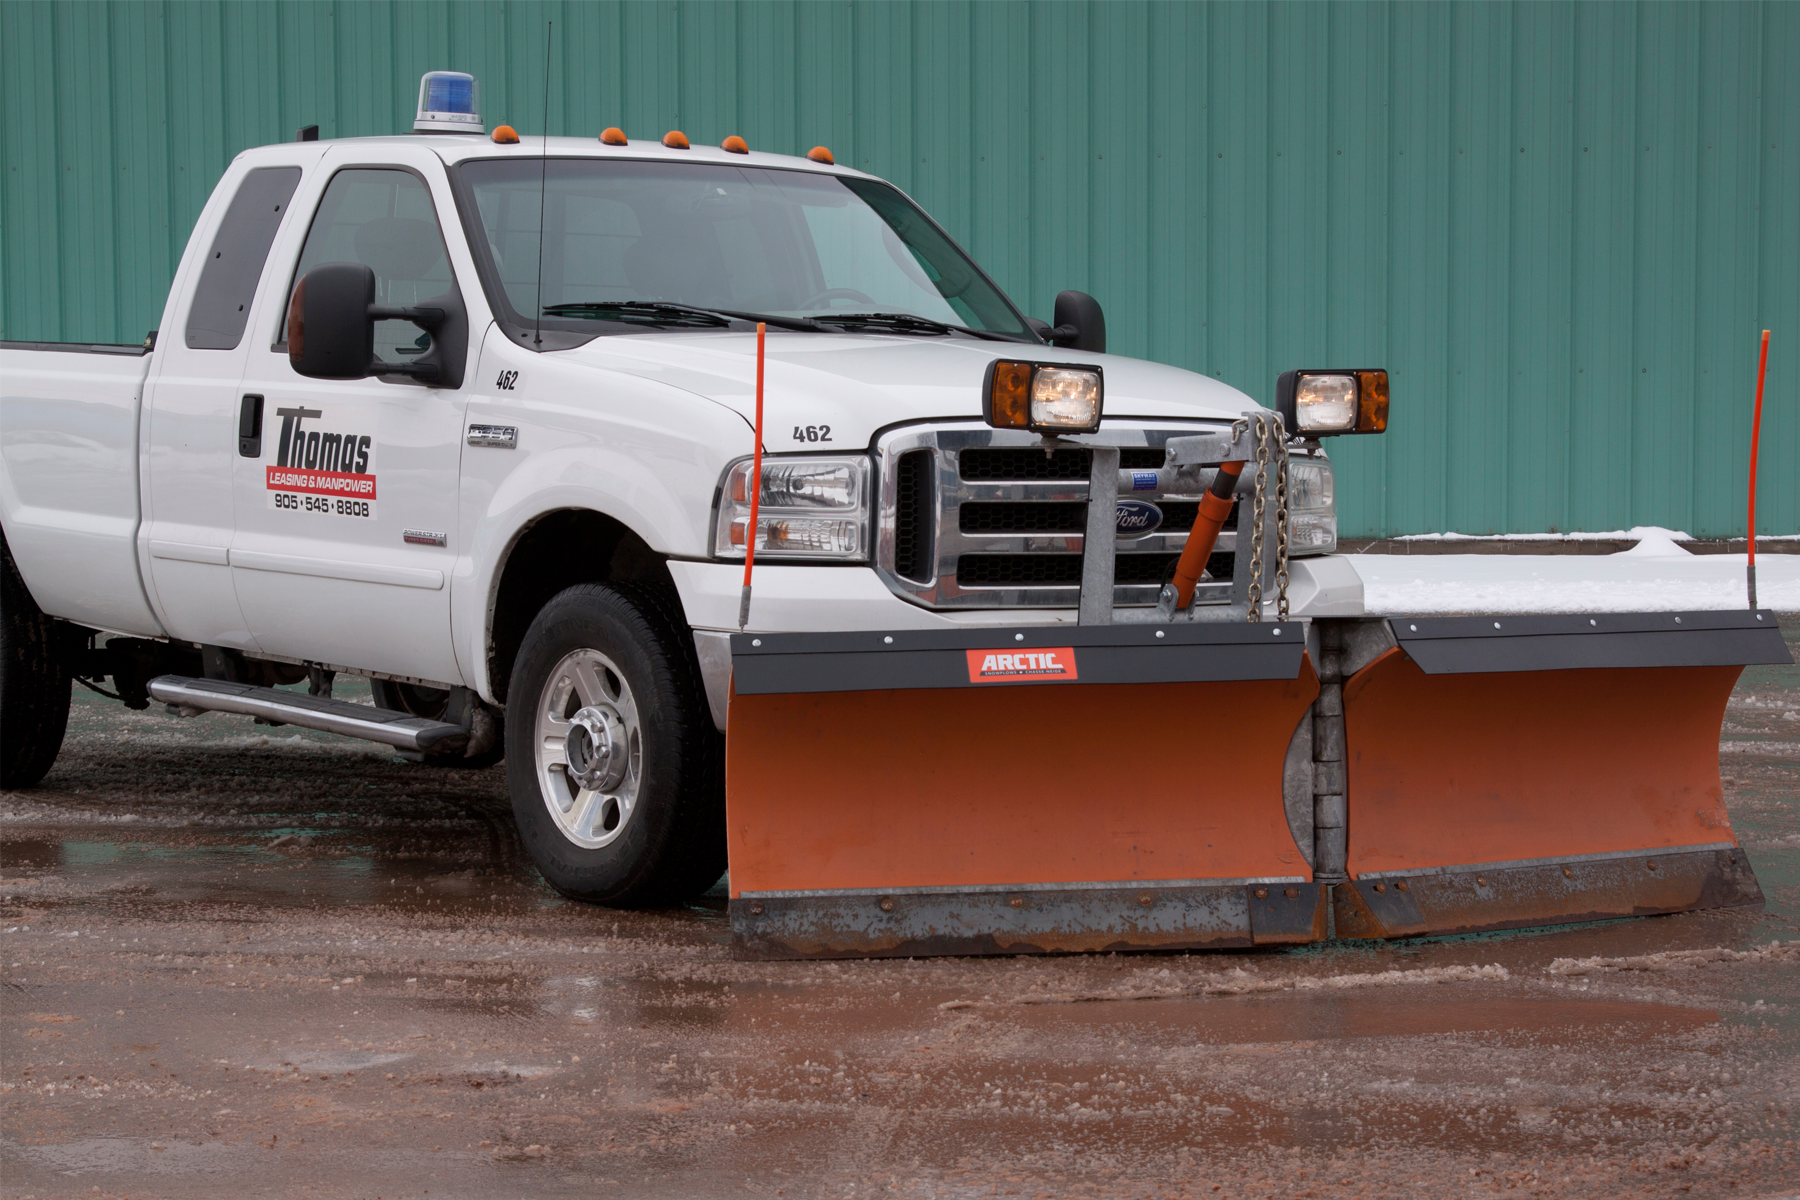 7102-F250-Ext-Cab-Equipped-with-Snow-Plow